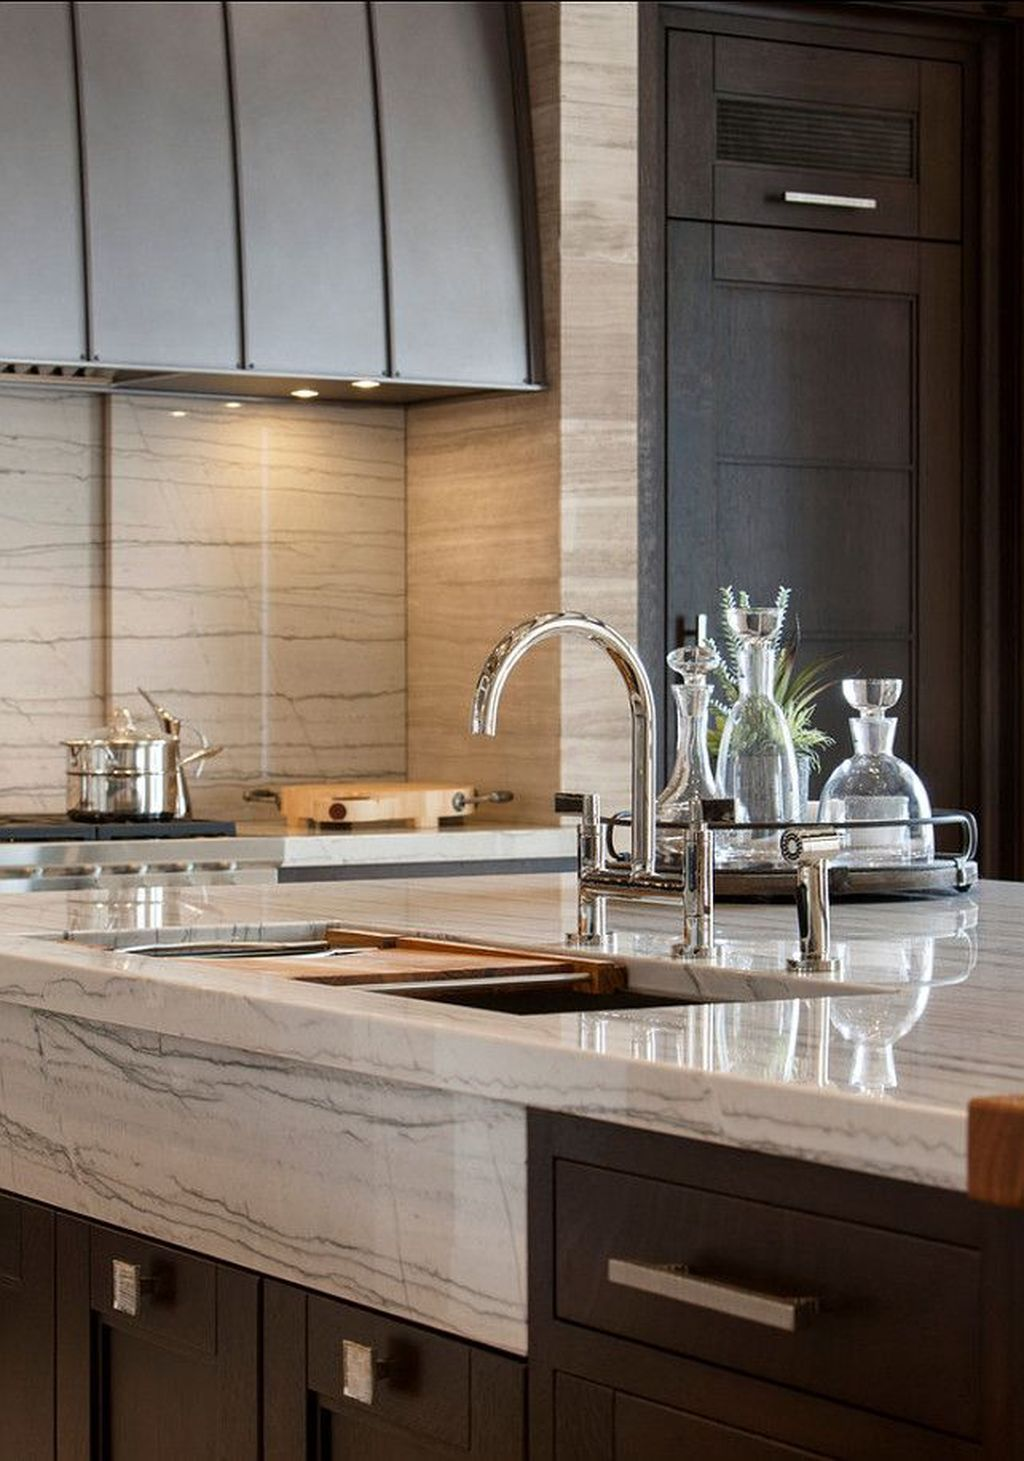 20 Amazing Transitional Kitchen Designs For Your Home ...